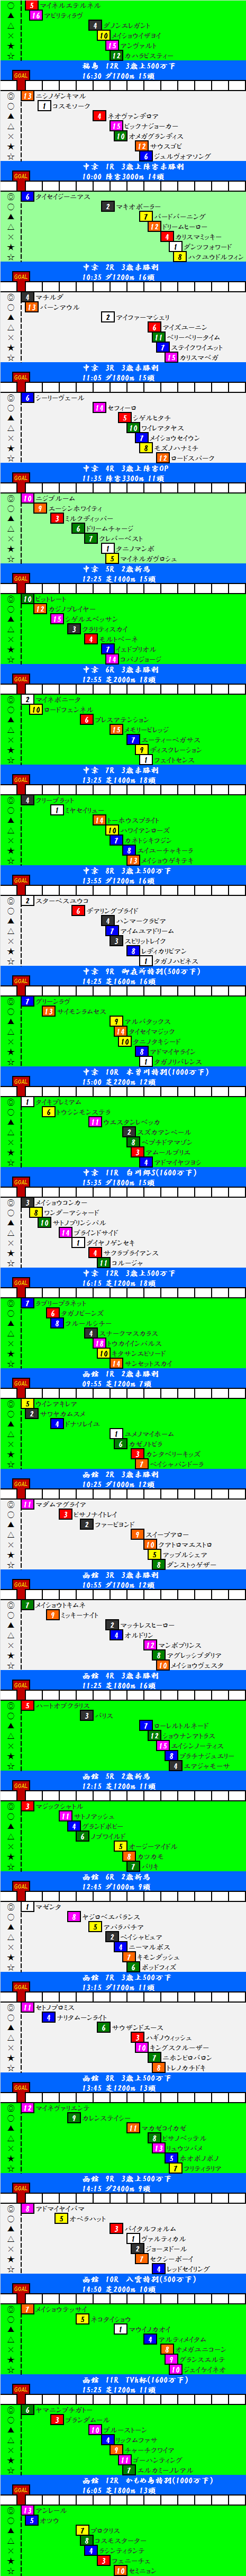 201407052.png